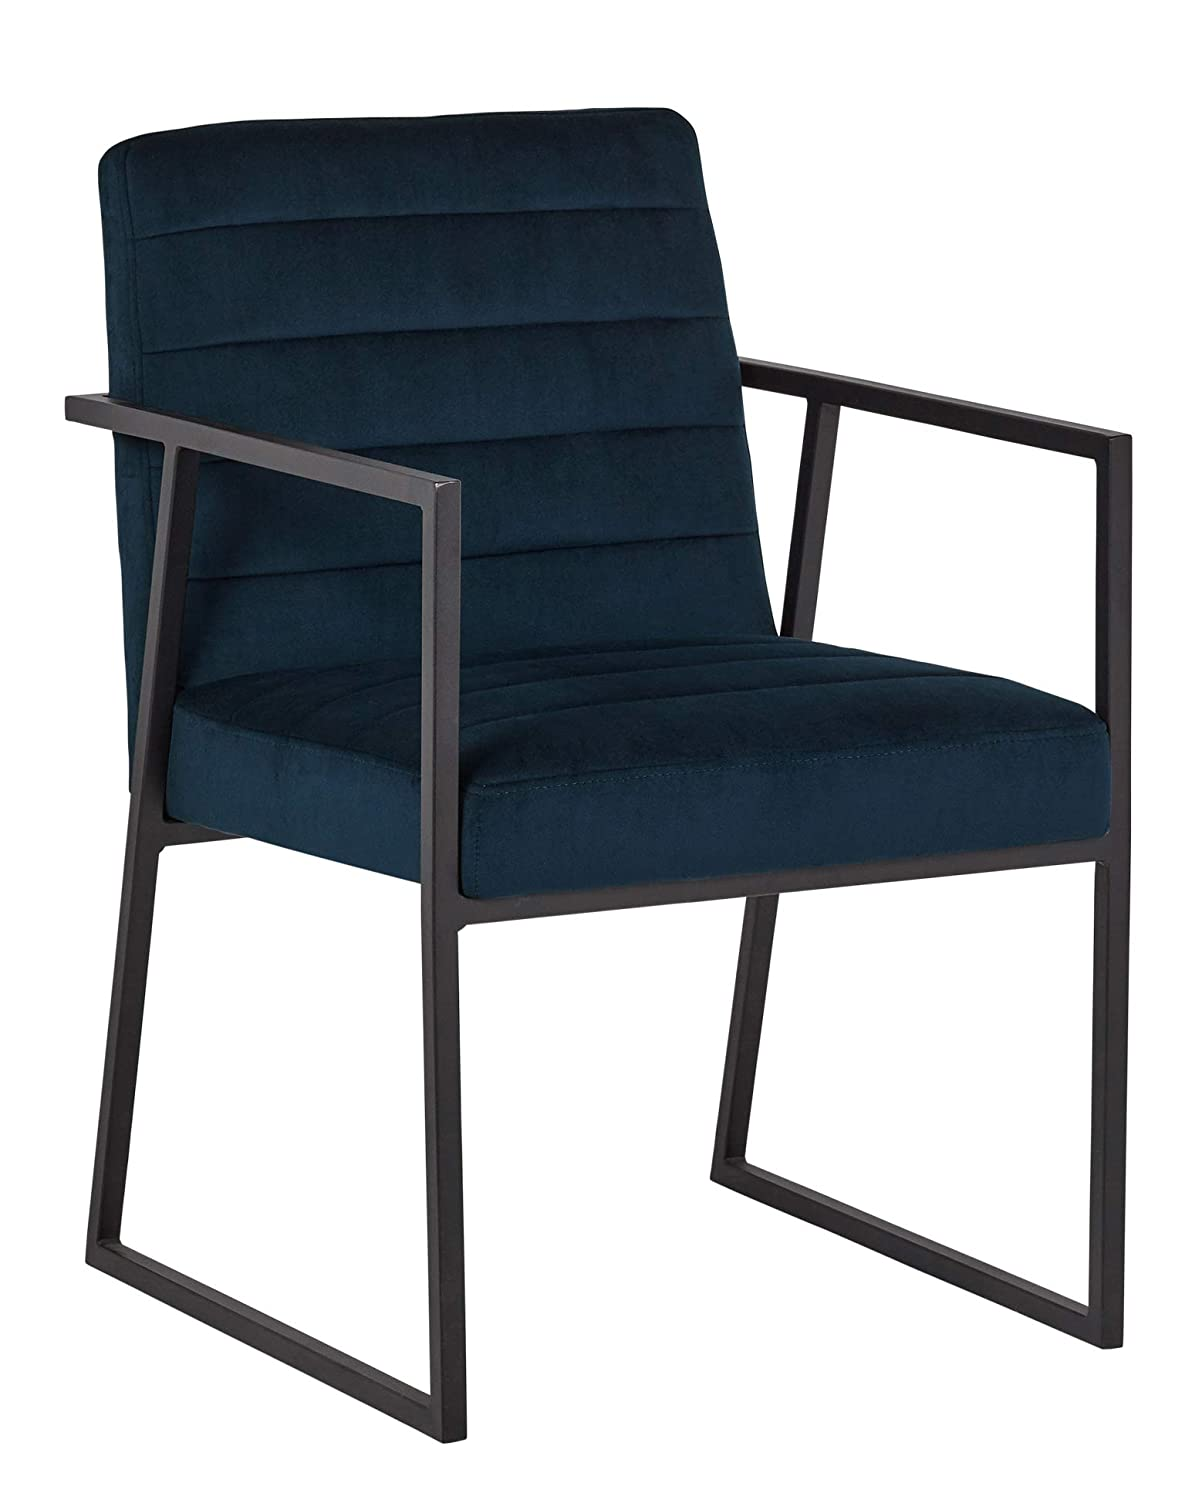 Rivet Allie Modern Velvet Industrial Dining Kitchen Chair, 33 Inch Height, Blue